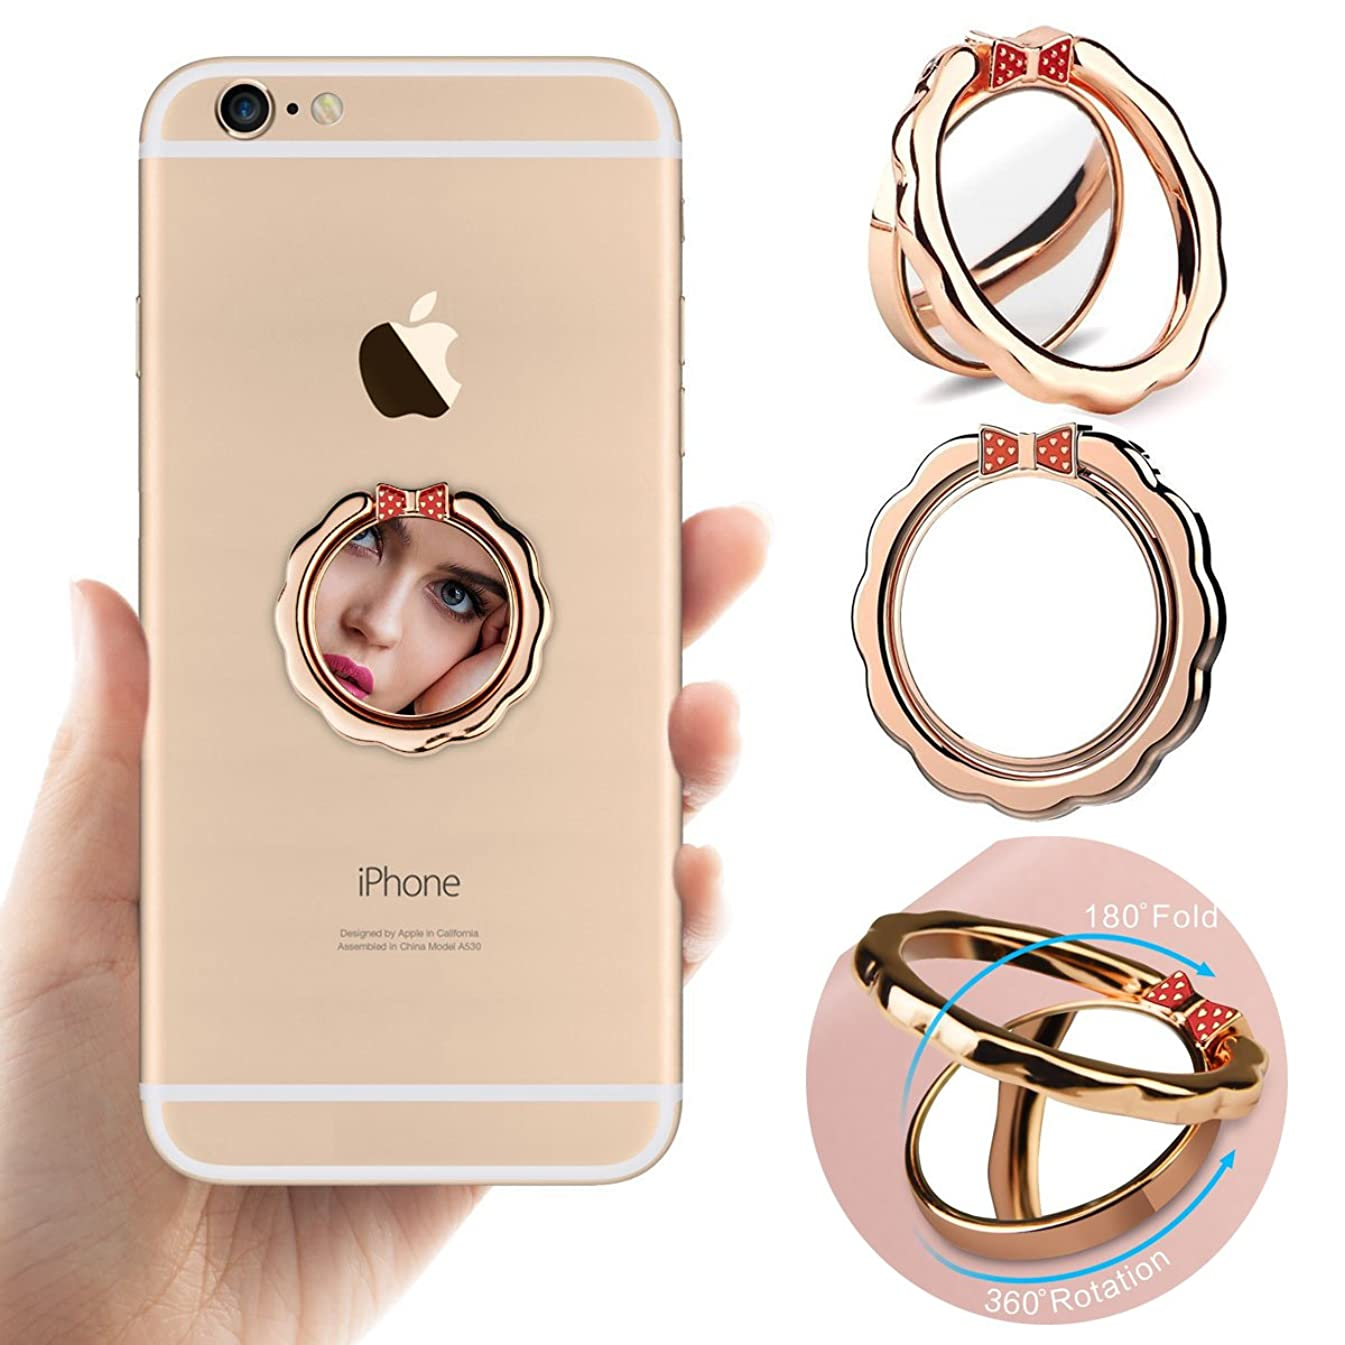 Cell phone holder, Best Share 360°Rotation Universal Metal Smartphone Ring Grip Stand Magnetic Car Mount Holder, Bowknot Mirror-Rose Gold